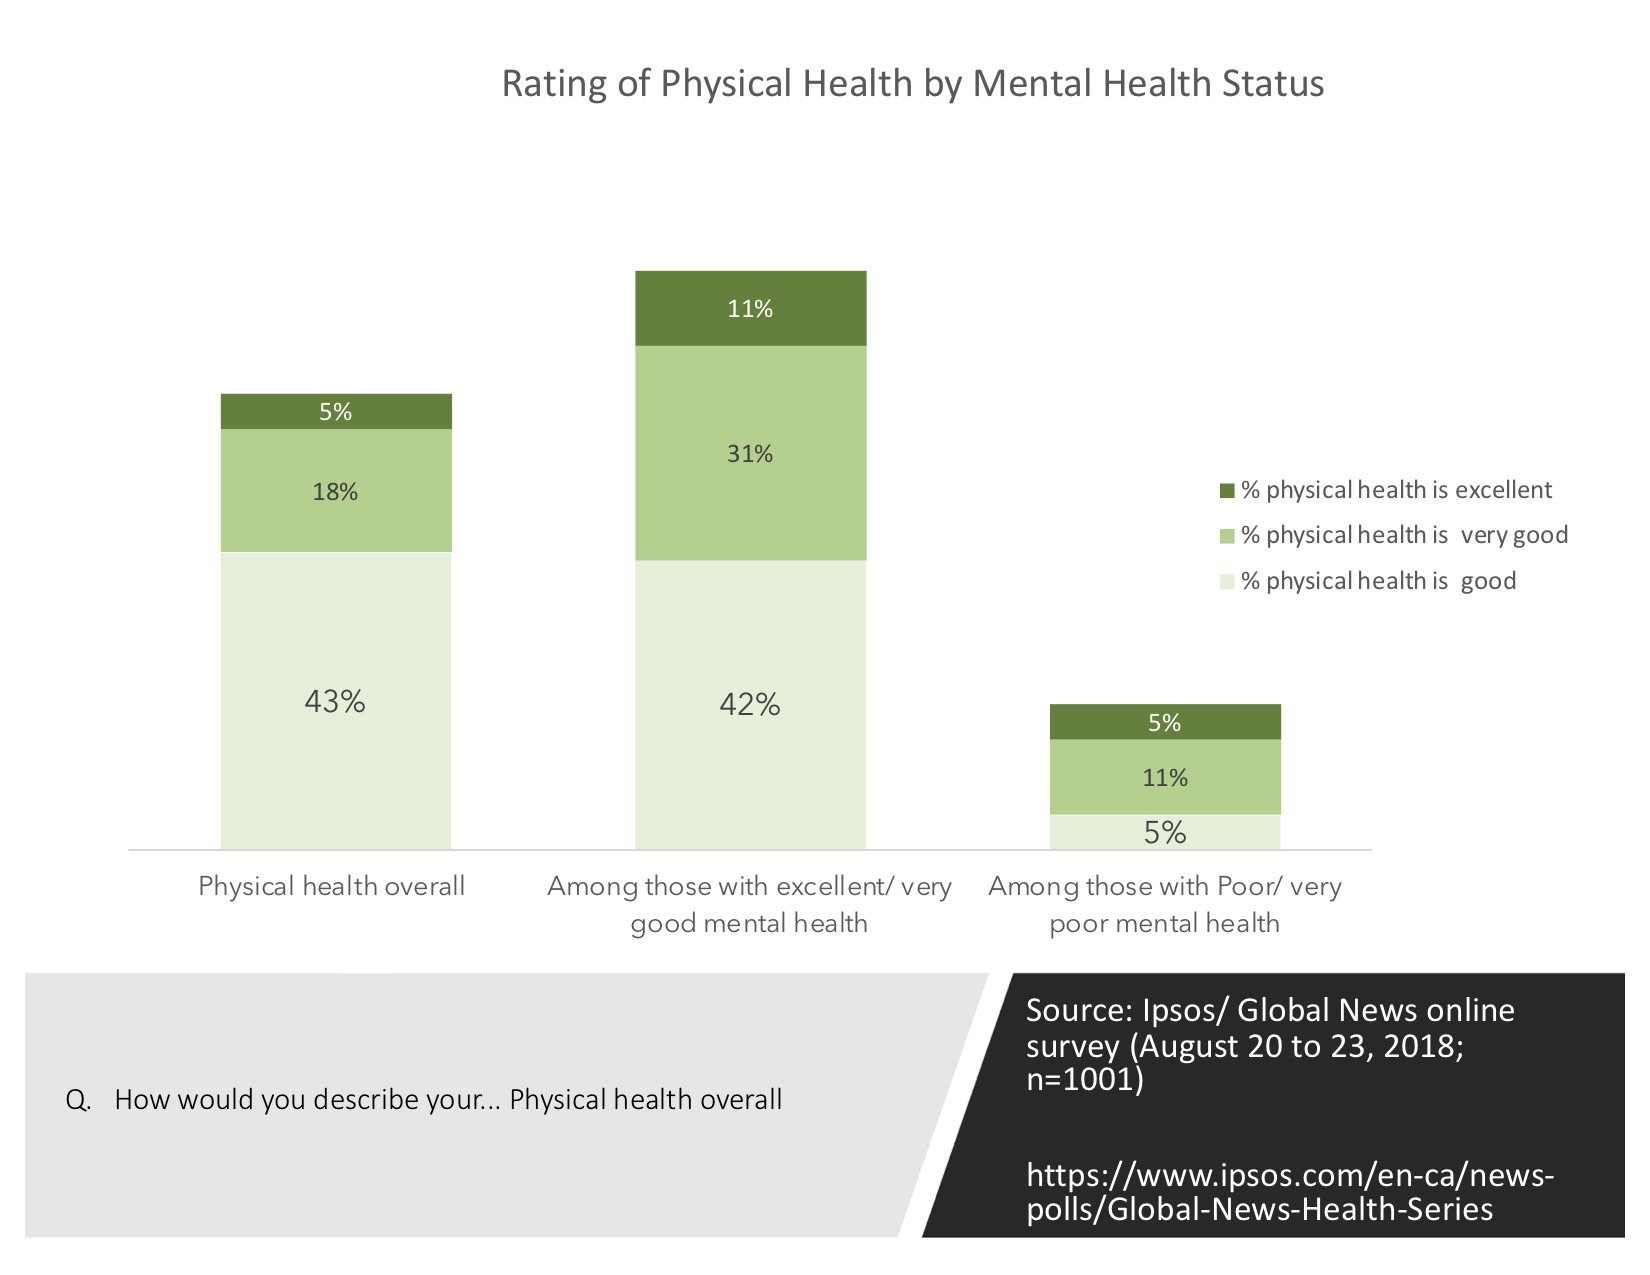 Impact of Mental Health on Physical Health